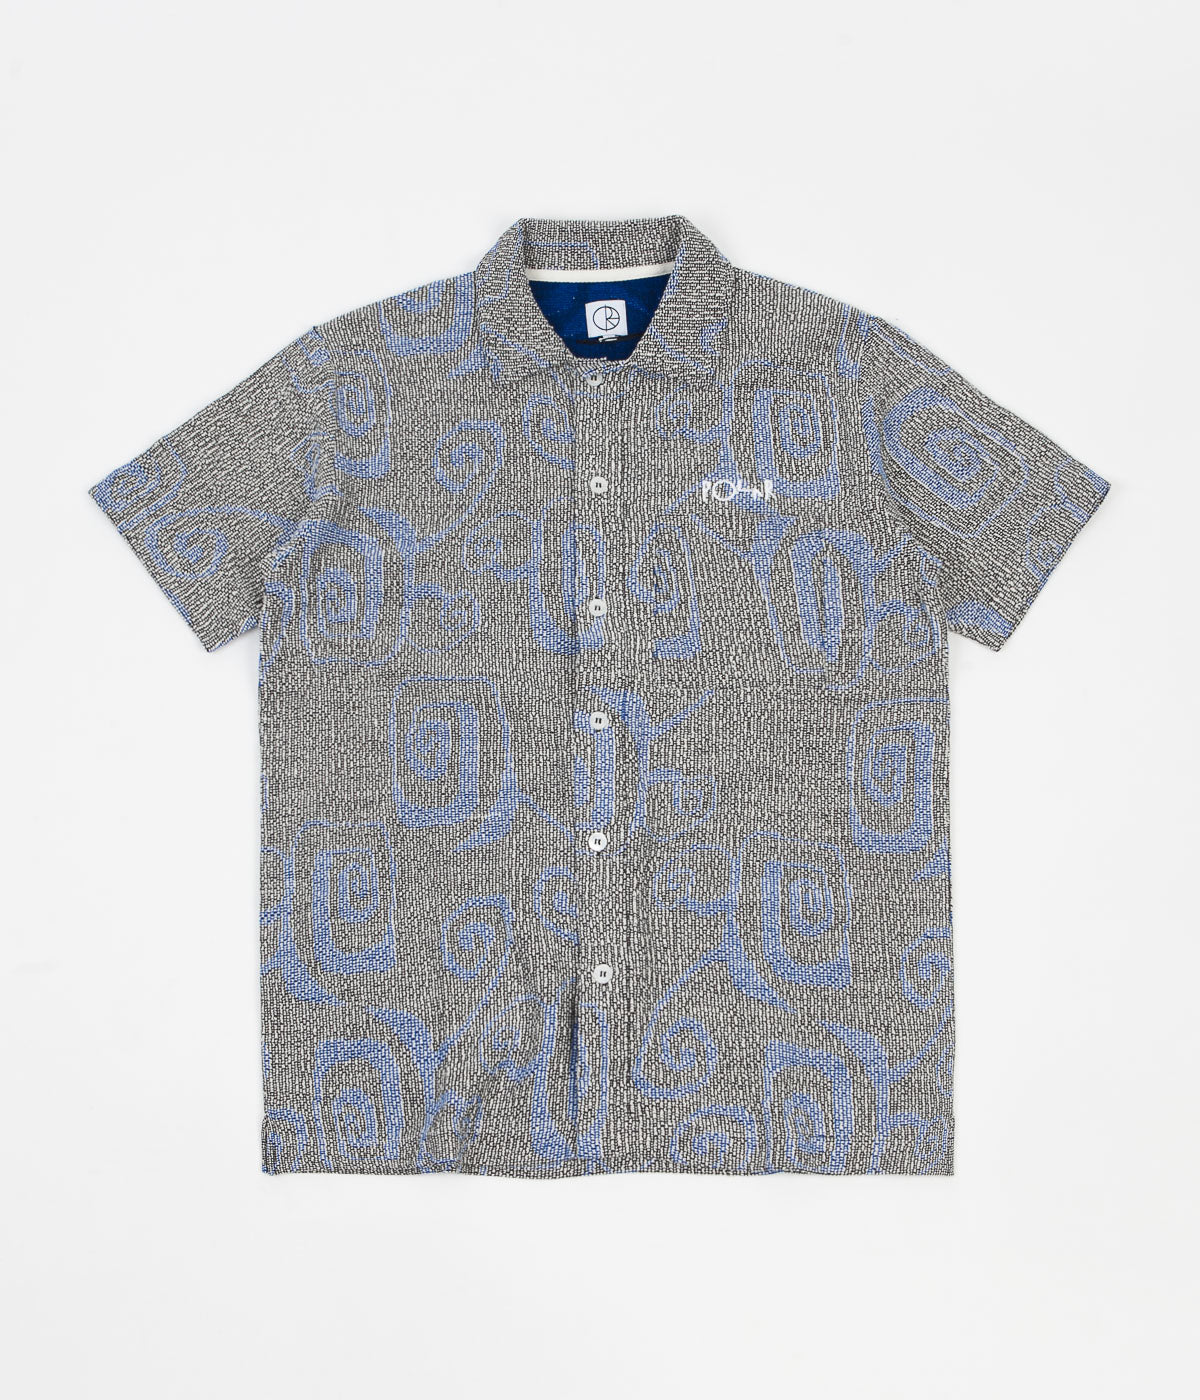 Polar Patterned Shirt - Black